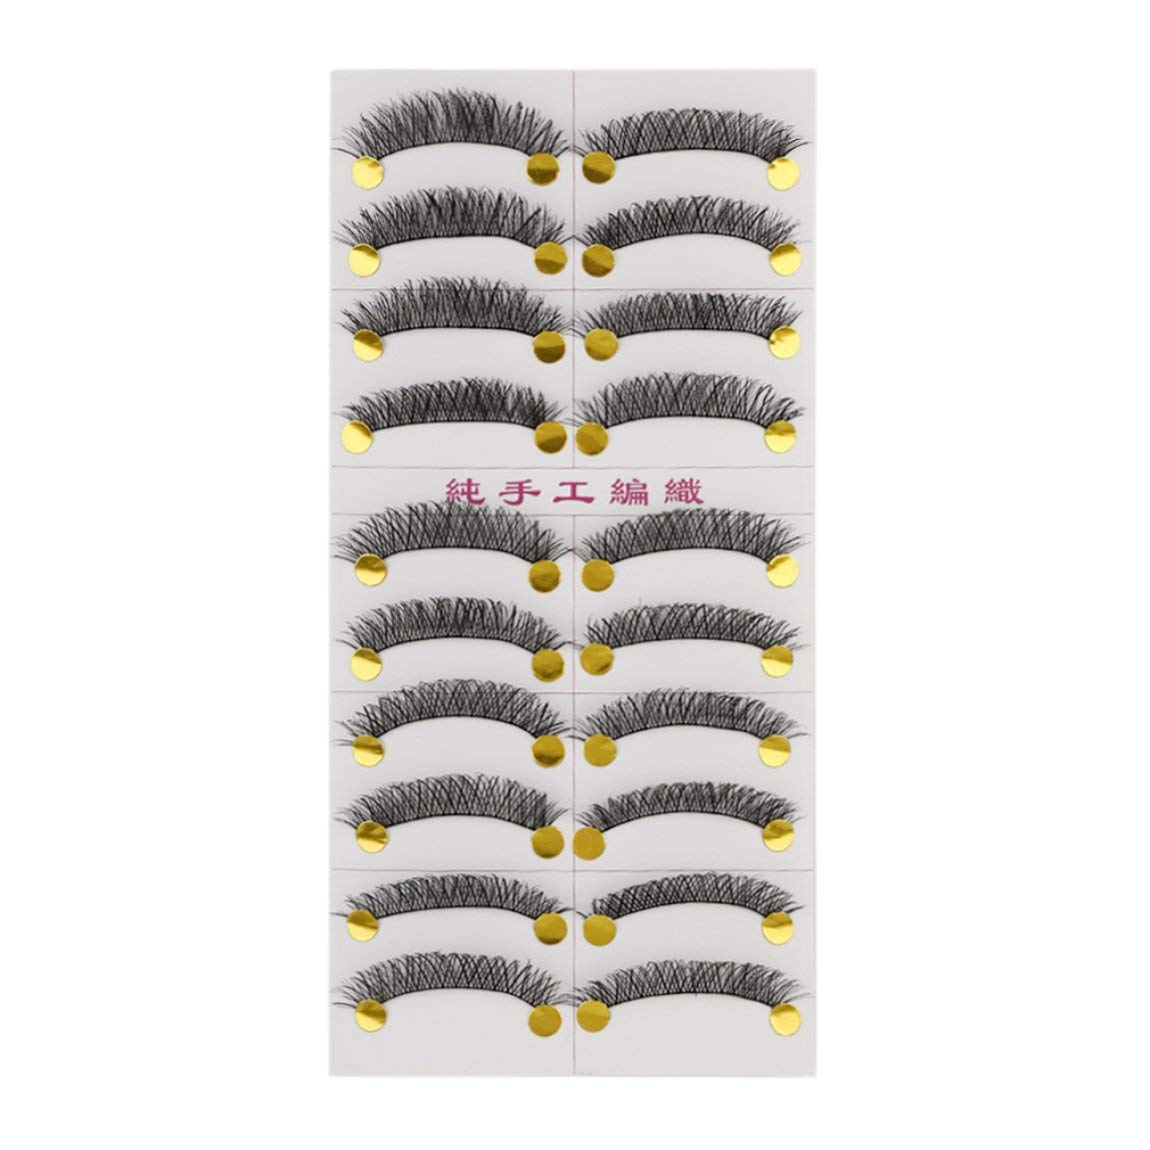 M14 Handmade False Eyelash Janpanese Style Pure Manual Long Thick Messy 10 Pairs Popular Beauty Tool for Women Makeup SeniorMar